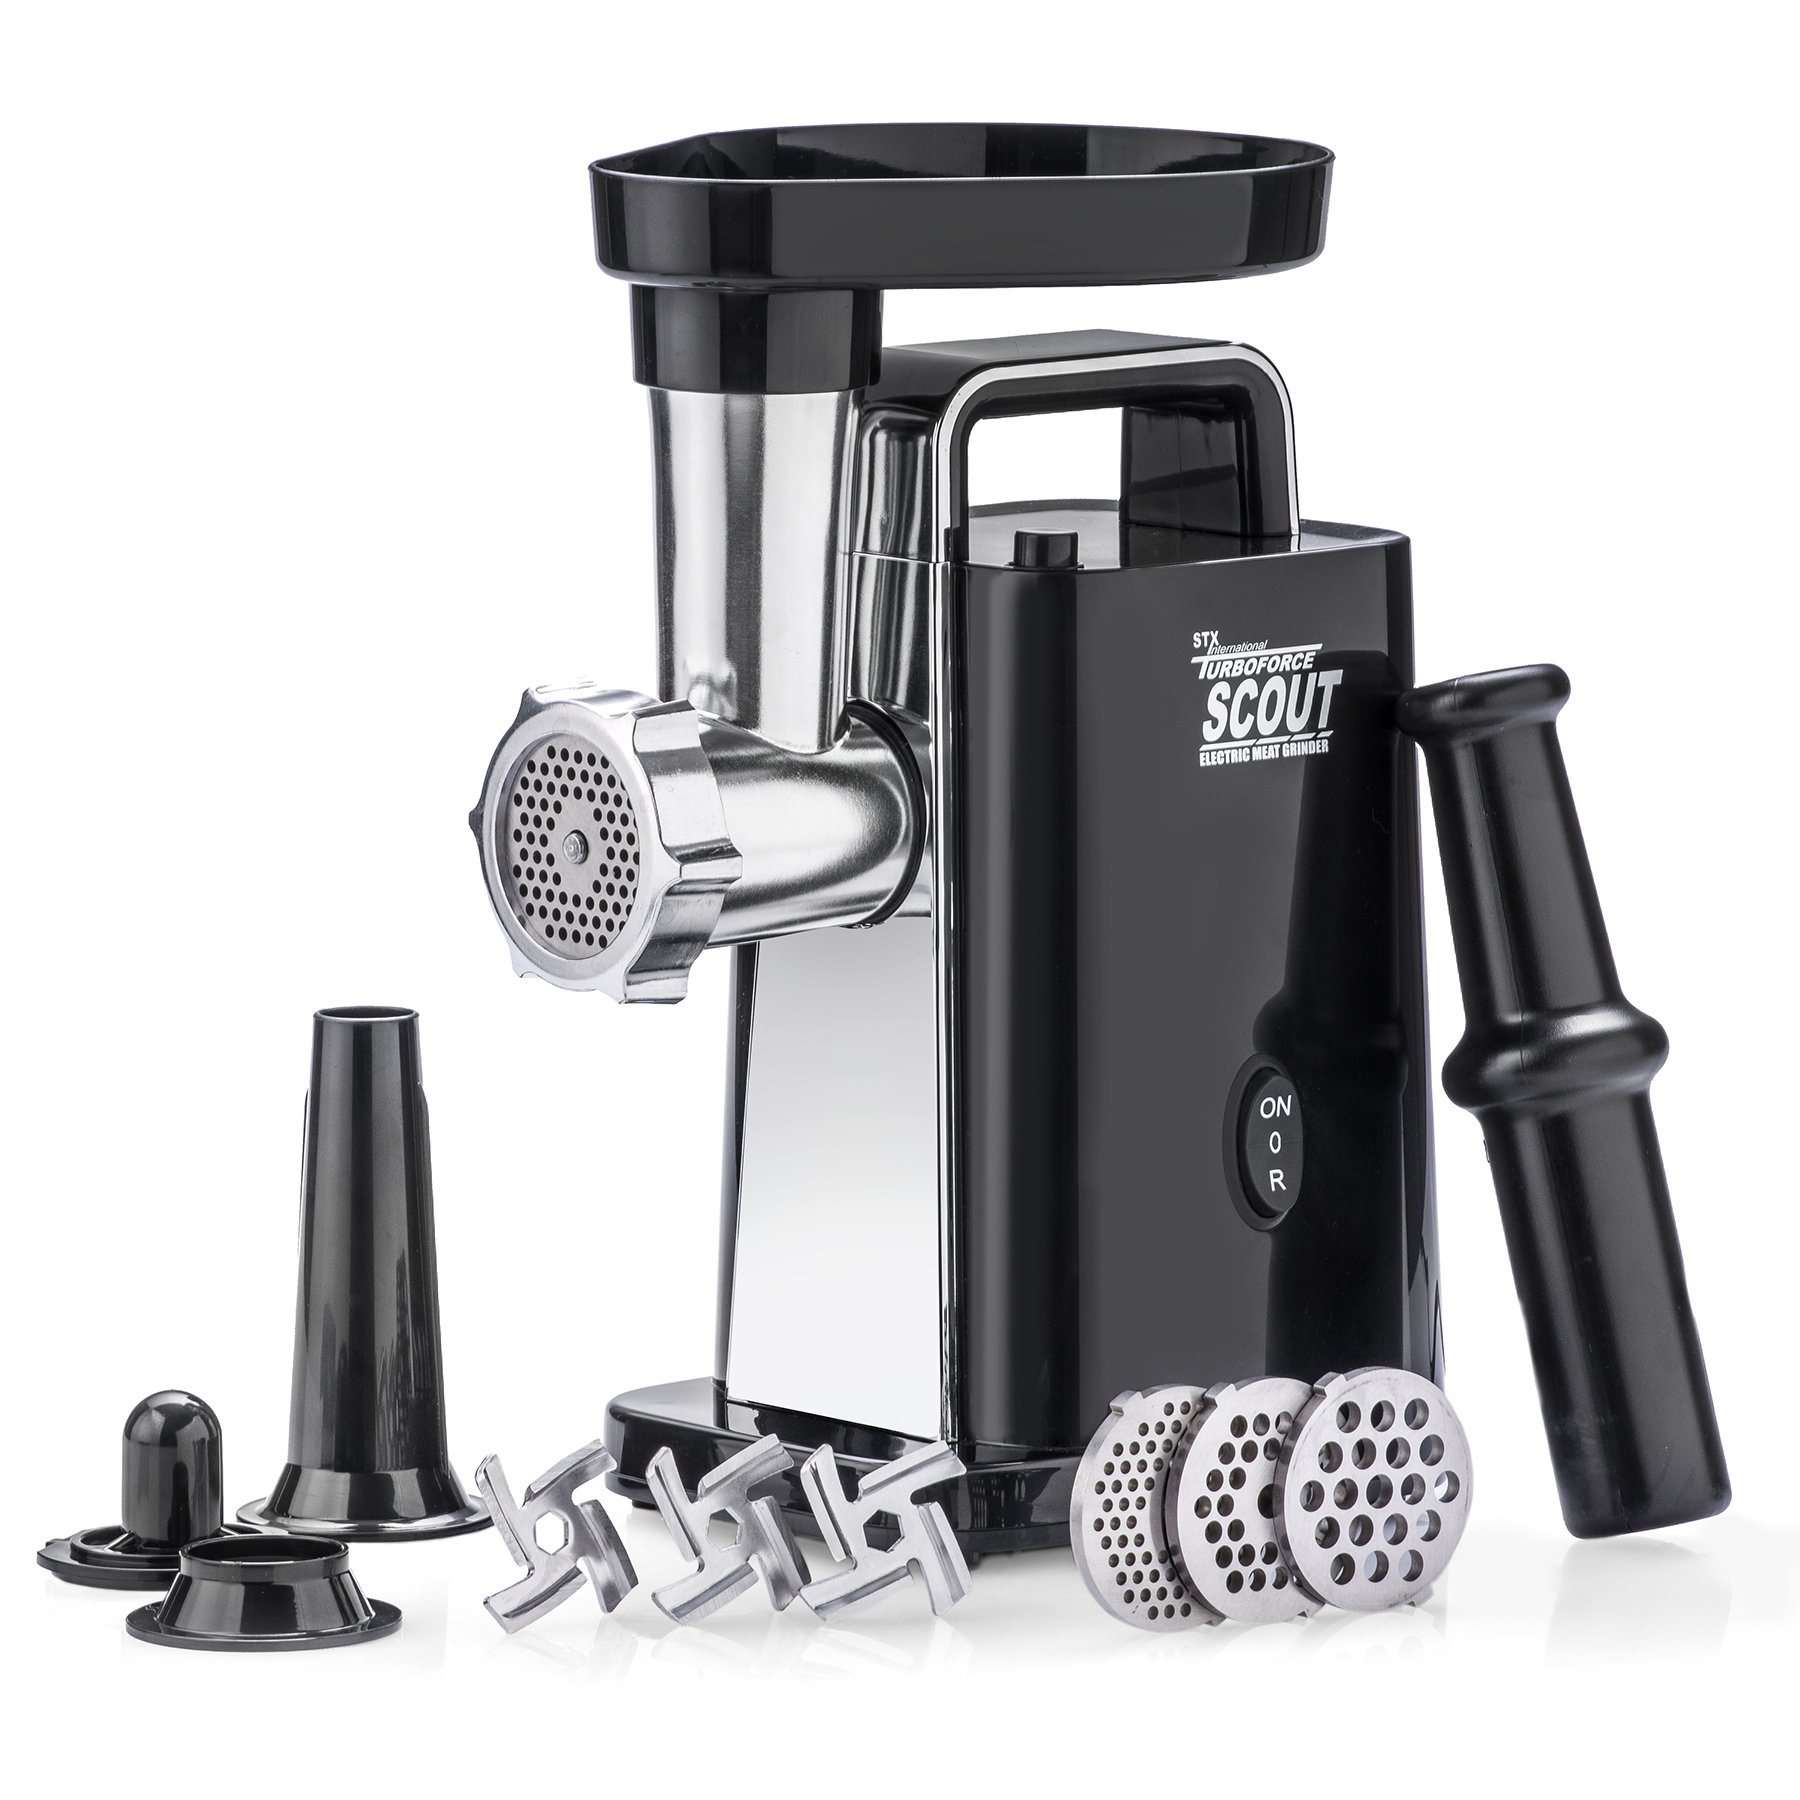 Electric Meat Grinder – Size #5 – Model STX-1000-TS - STX International Turboforce Scout – Handle – 3 Grinding Plates – 3 Stainless Steel Cutting Blades – Kubbe & Sausage Stuffing Attachment